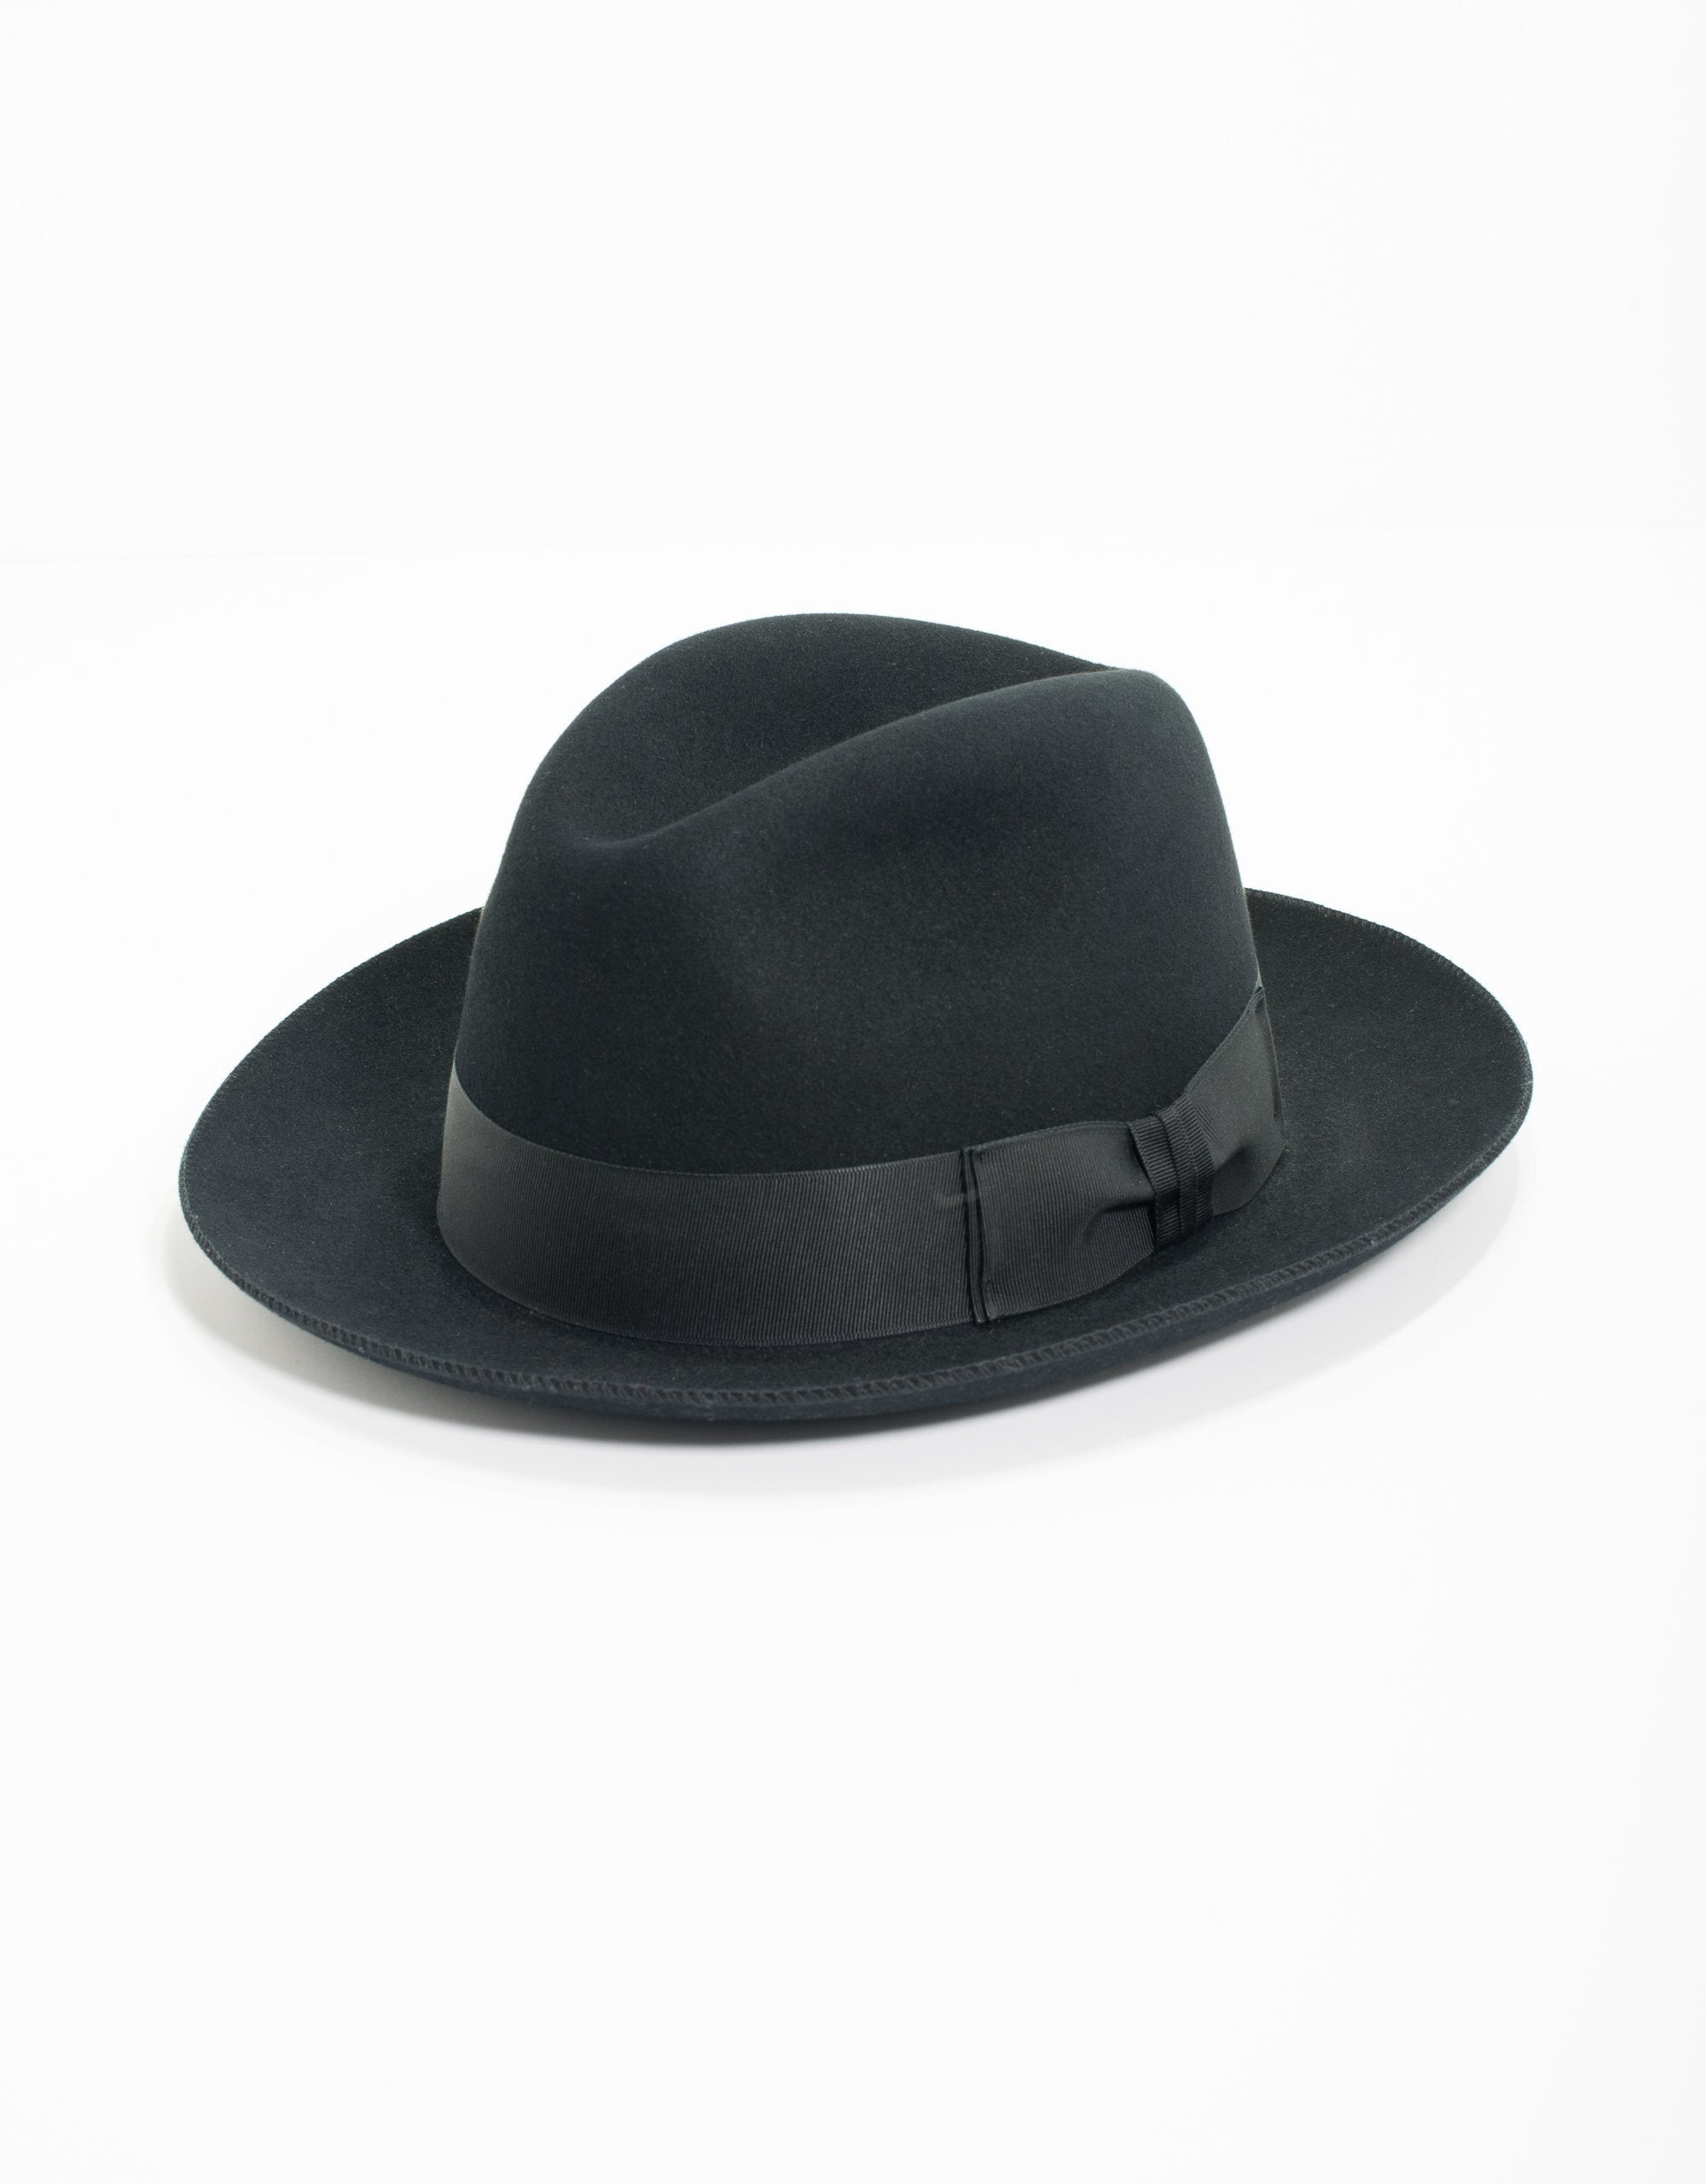 PINCHFRONT CROWN FEDORA *2 Colors